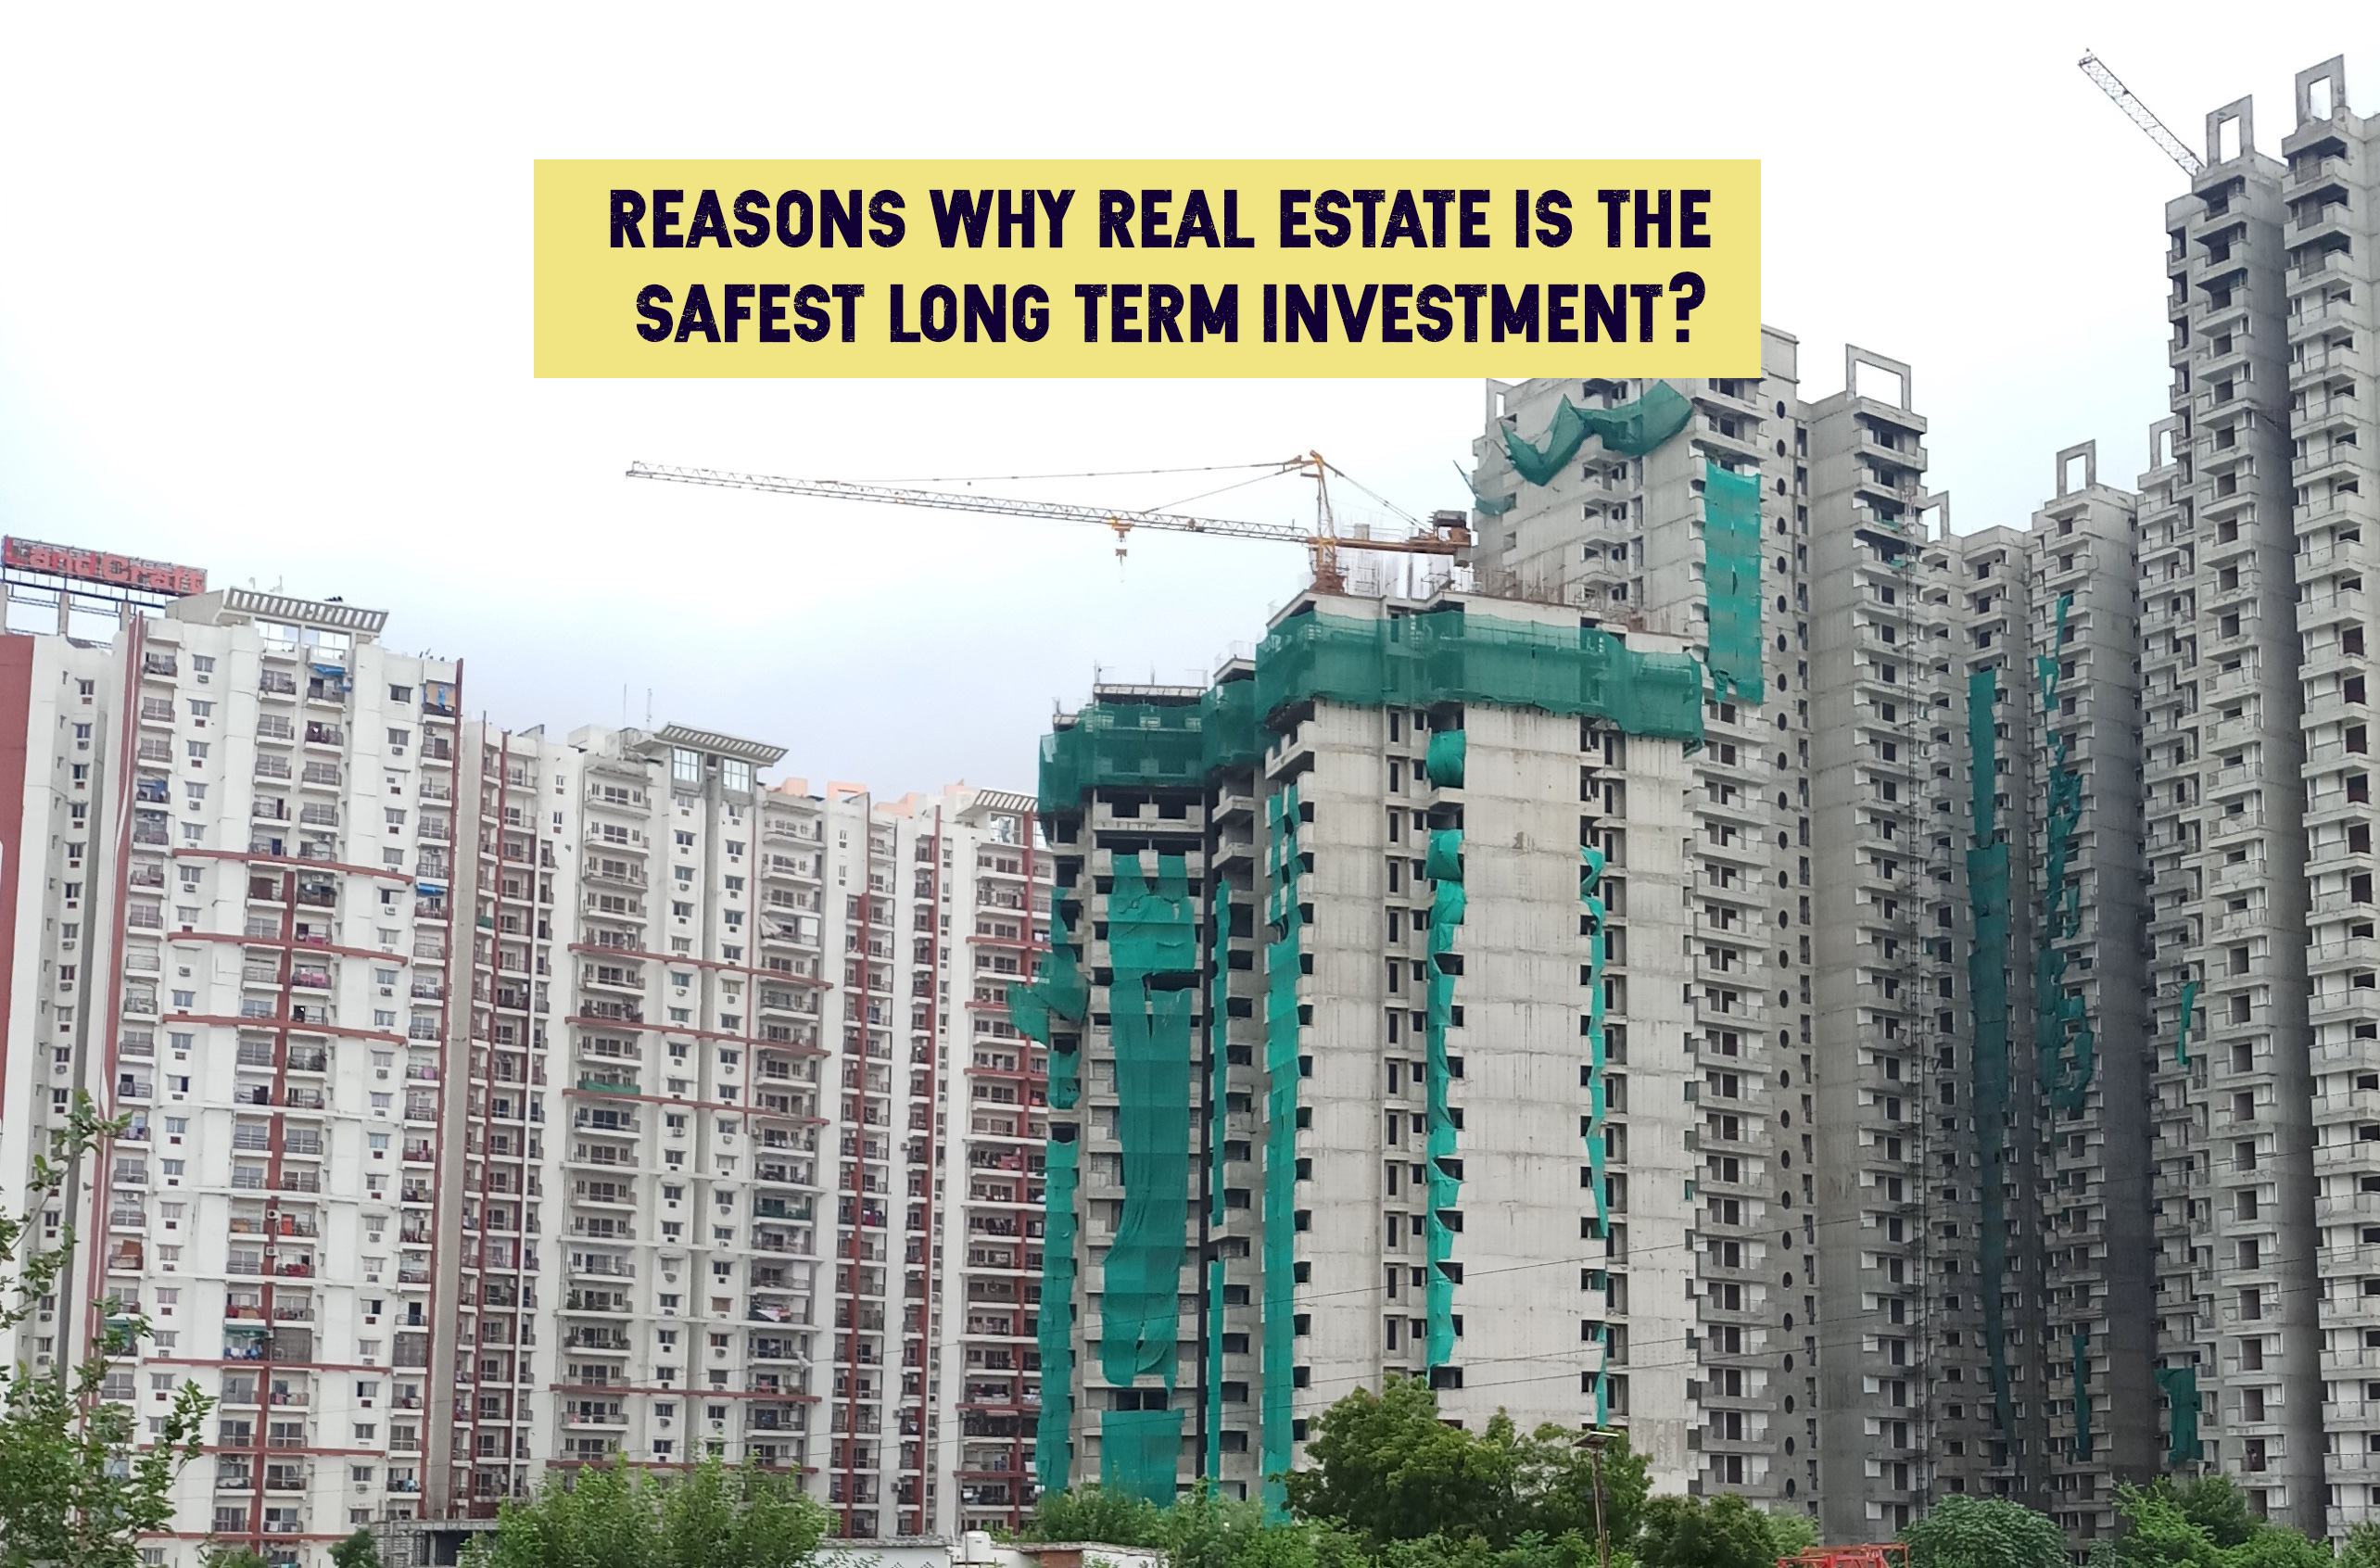 Reasons why real estate is the safest long term investment?